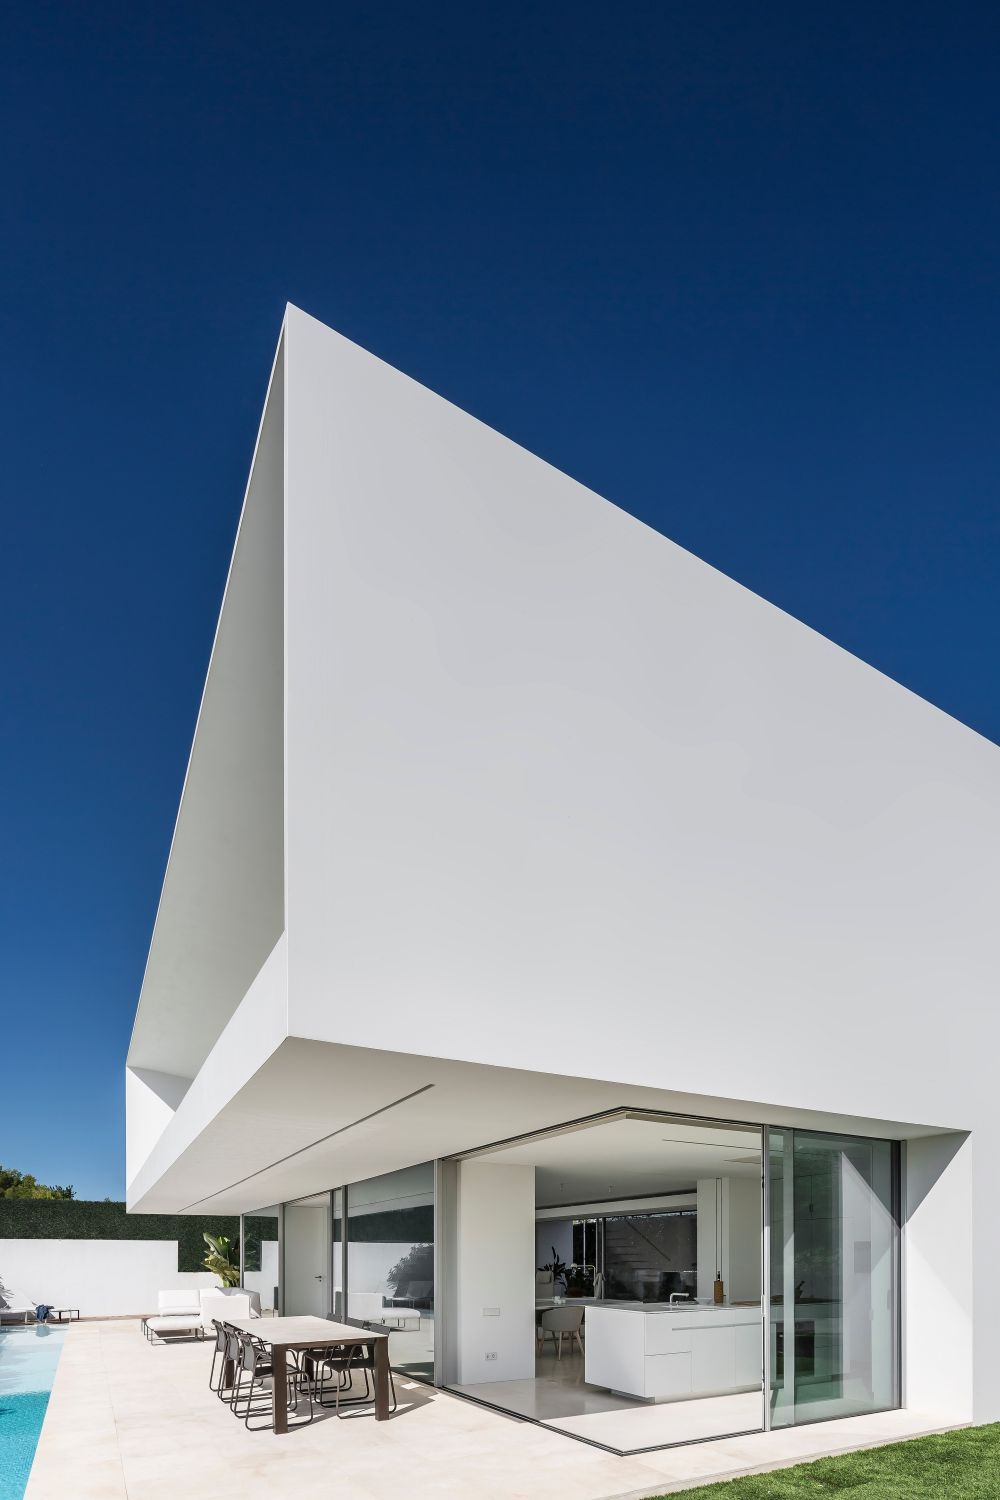 The house has a very clean and minimalistic aesthetic, featuring an all white exterior with large glazed surfaces